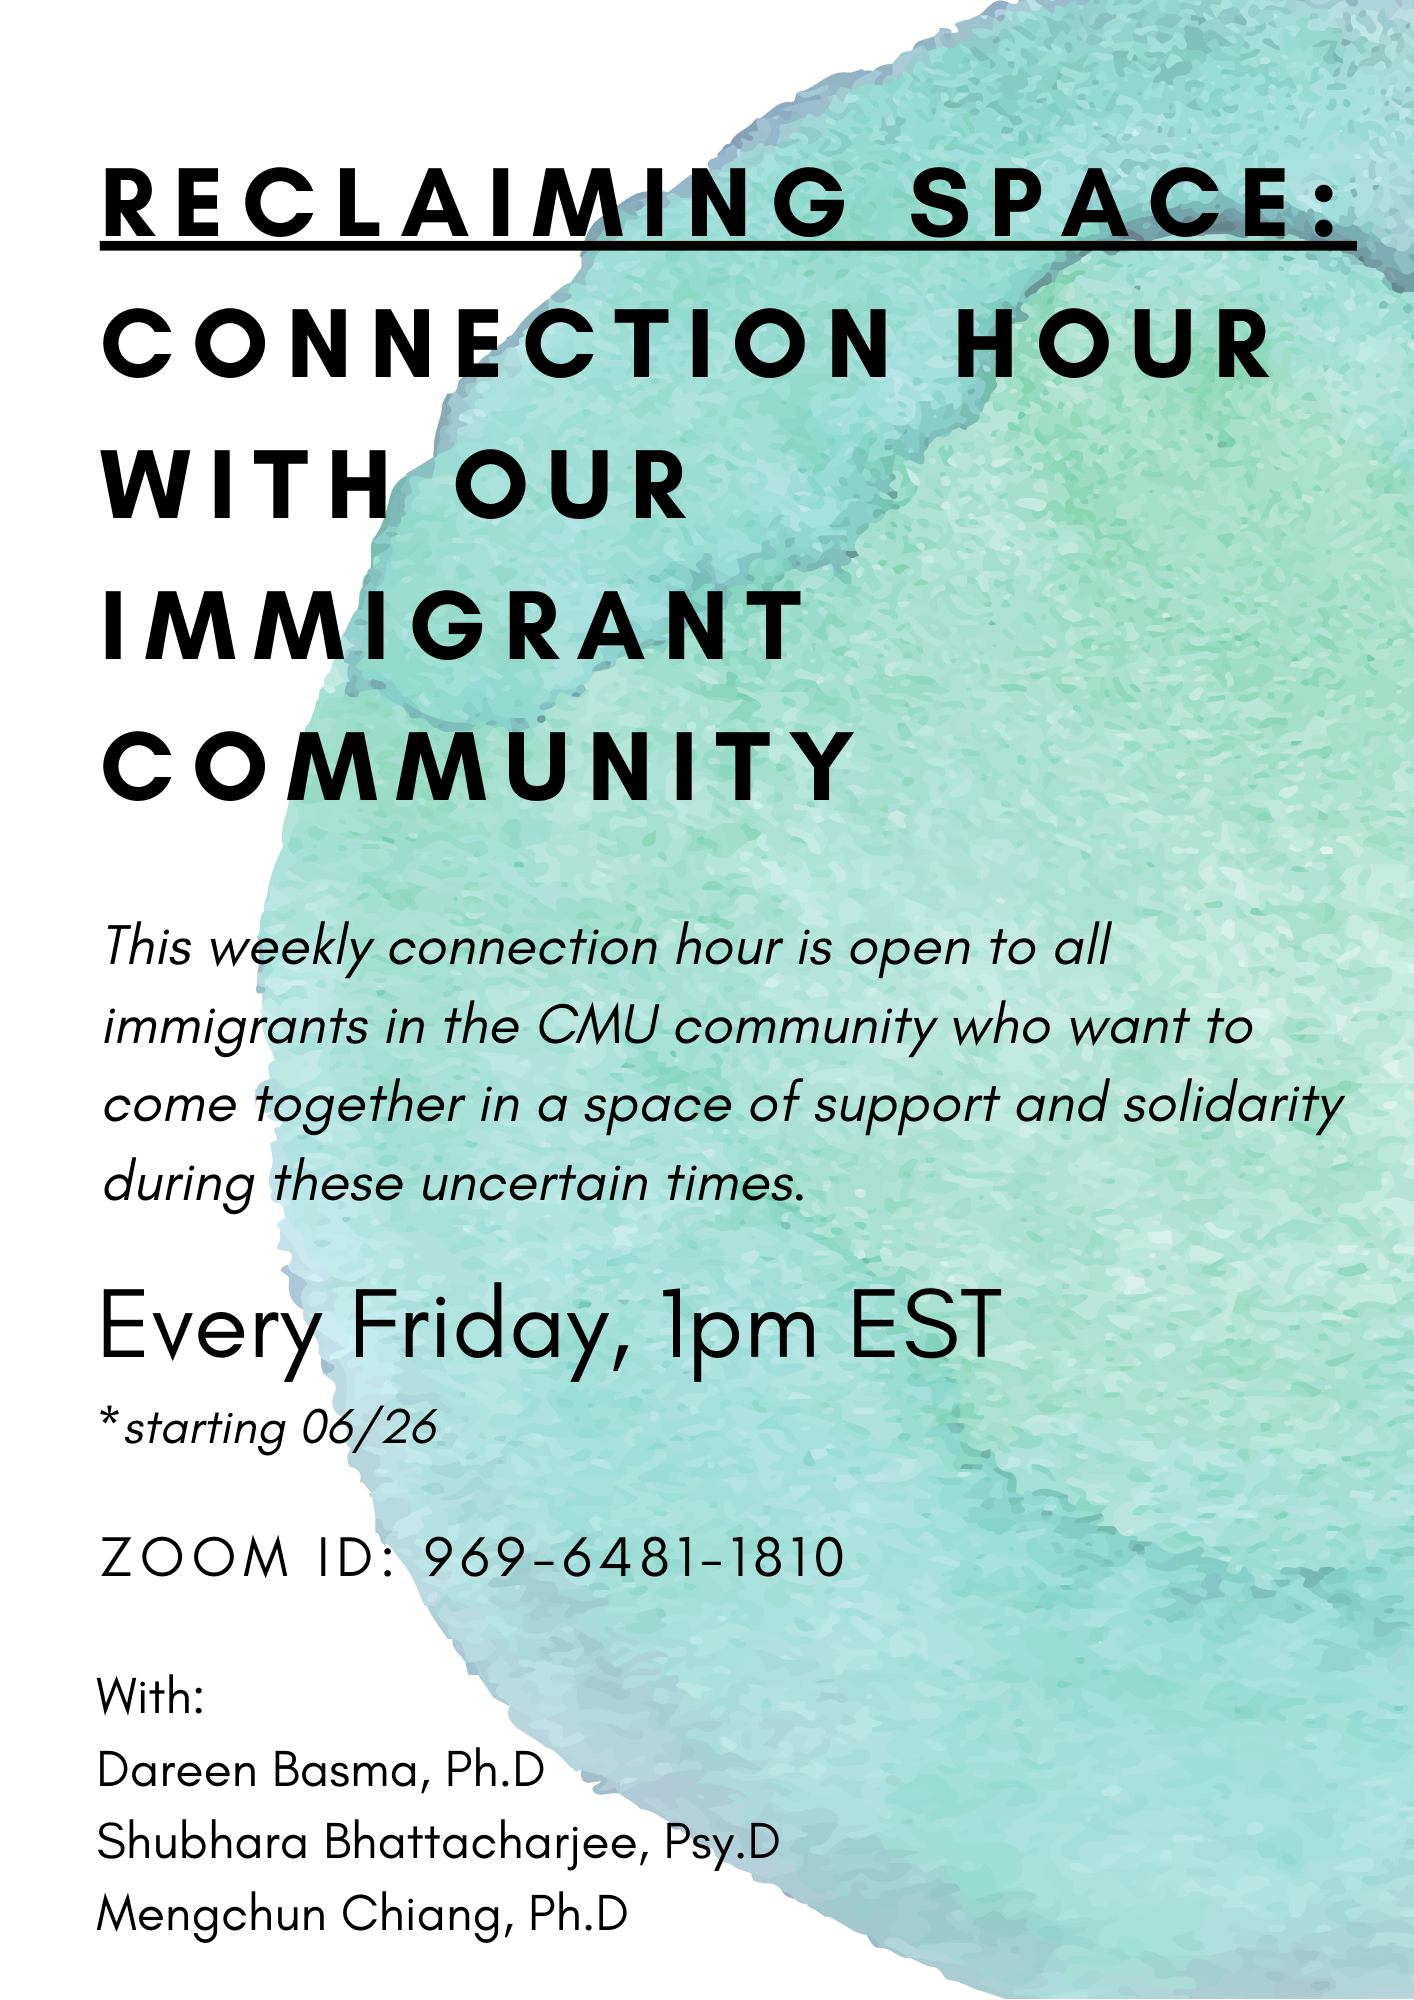 Flyer for Reclaiming Space: Connection Hour with our Immigrant Community on Fridays